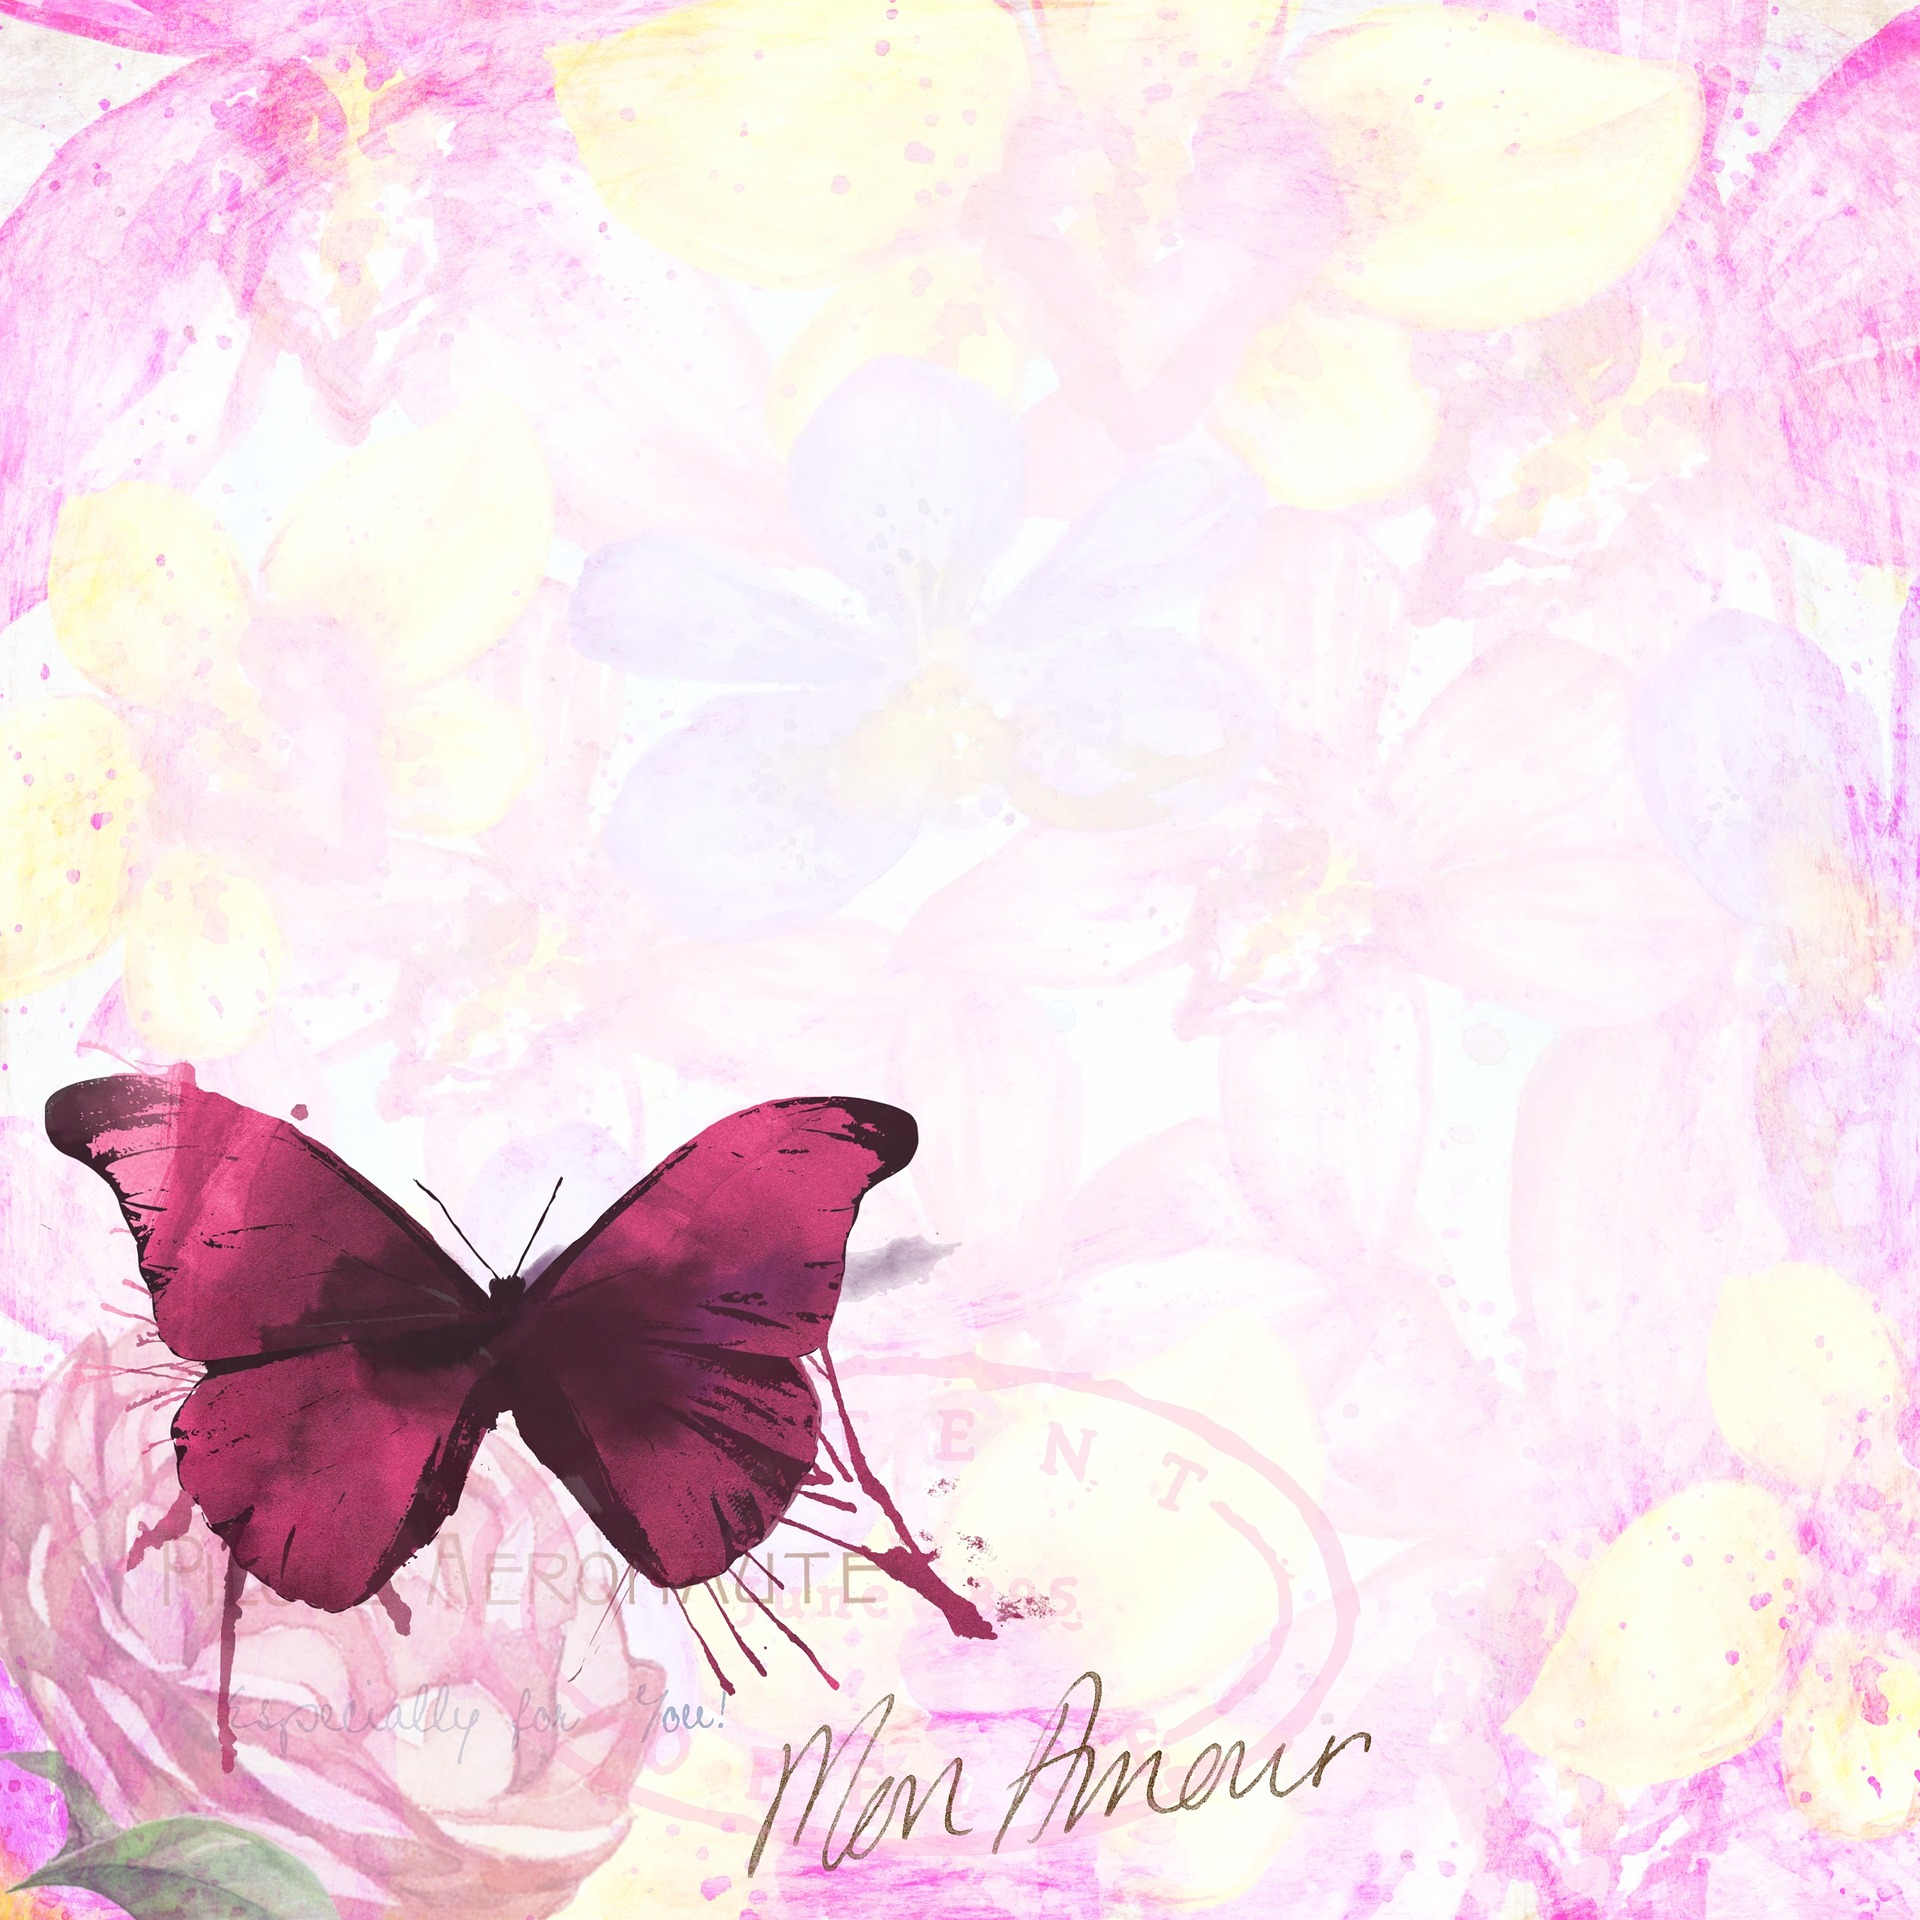 Pink Butterfly, Butterfly, Design, Fly, Insect, HQ Photo